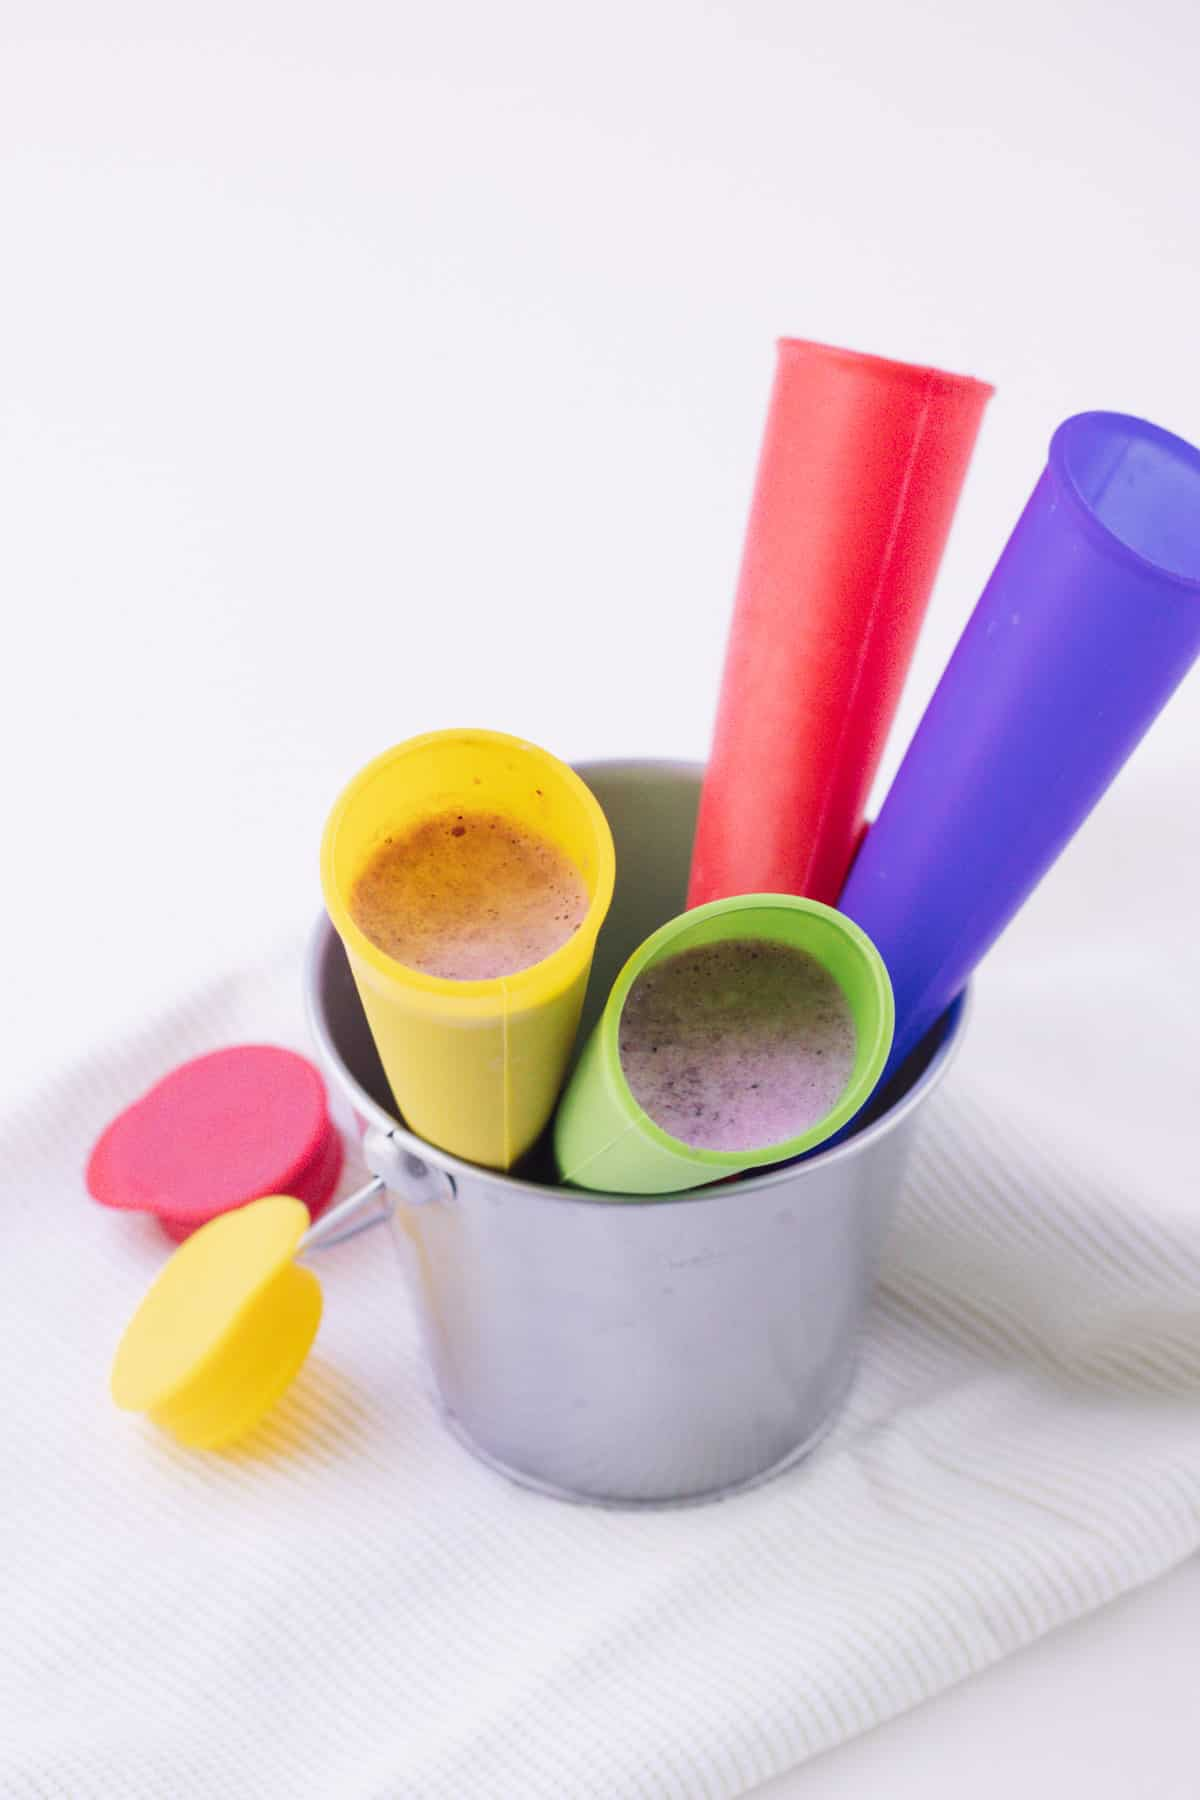 Multi-colored silicone freezer pop molds filled with PB&J smoothie in a small silver bucket and red and yellow lid to left.